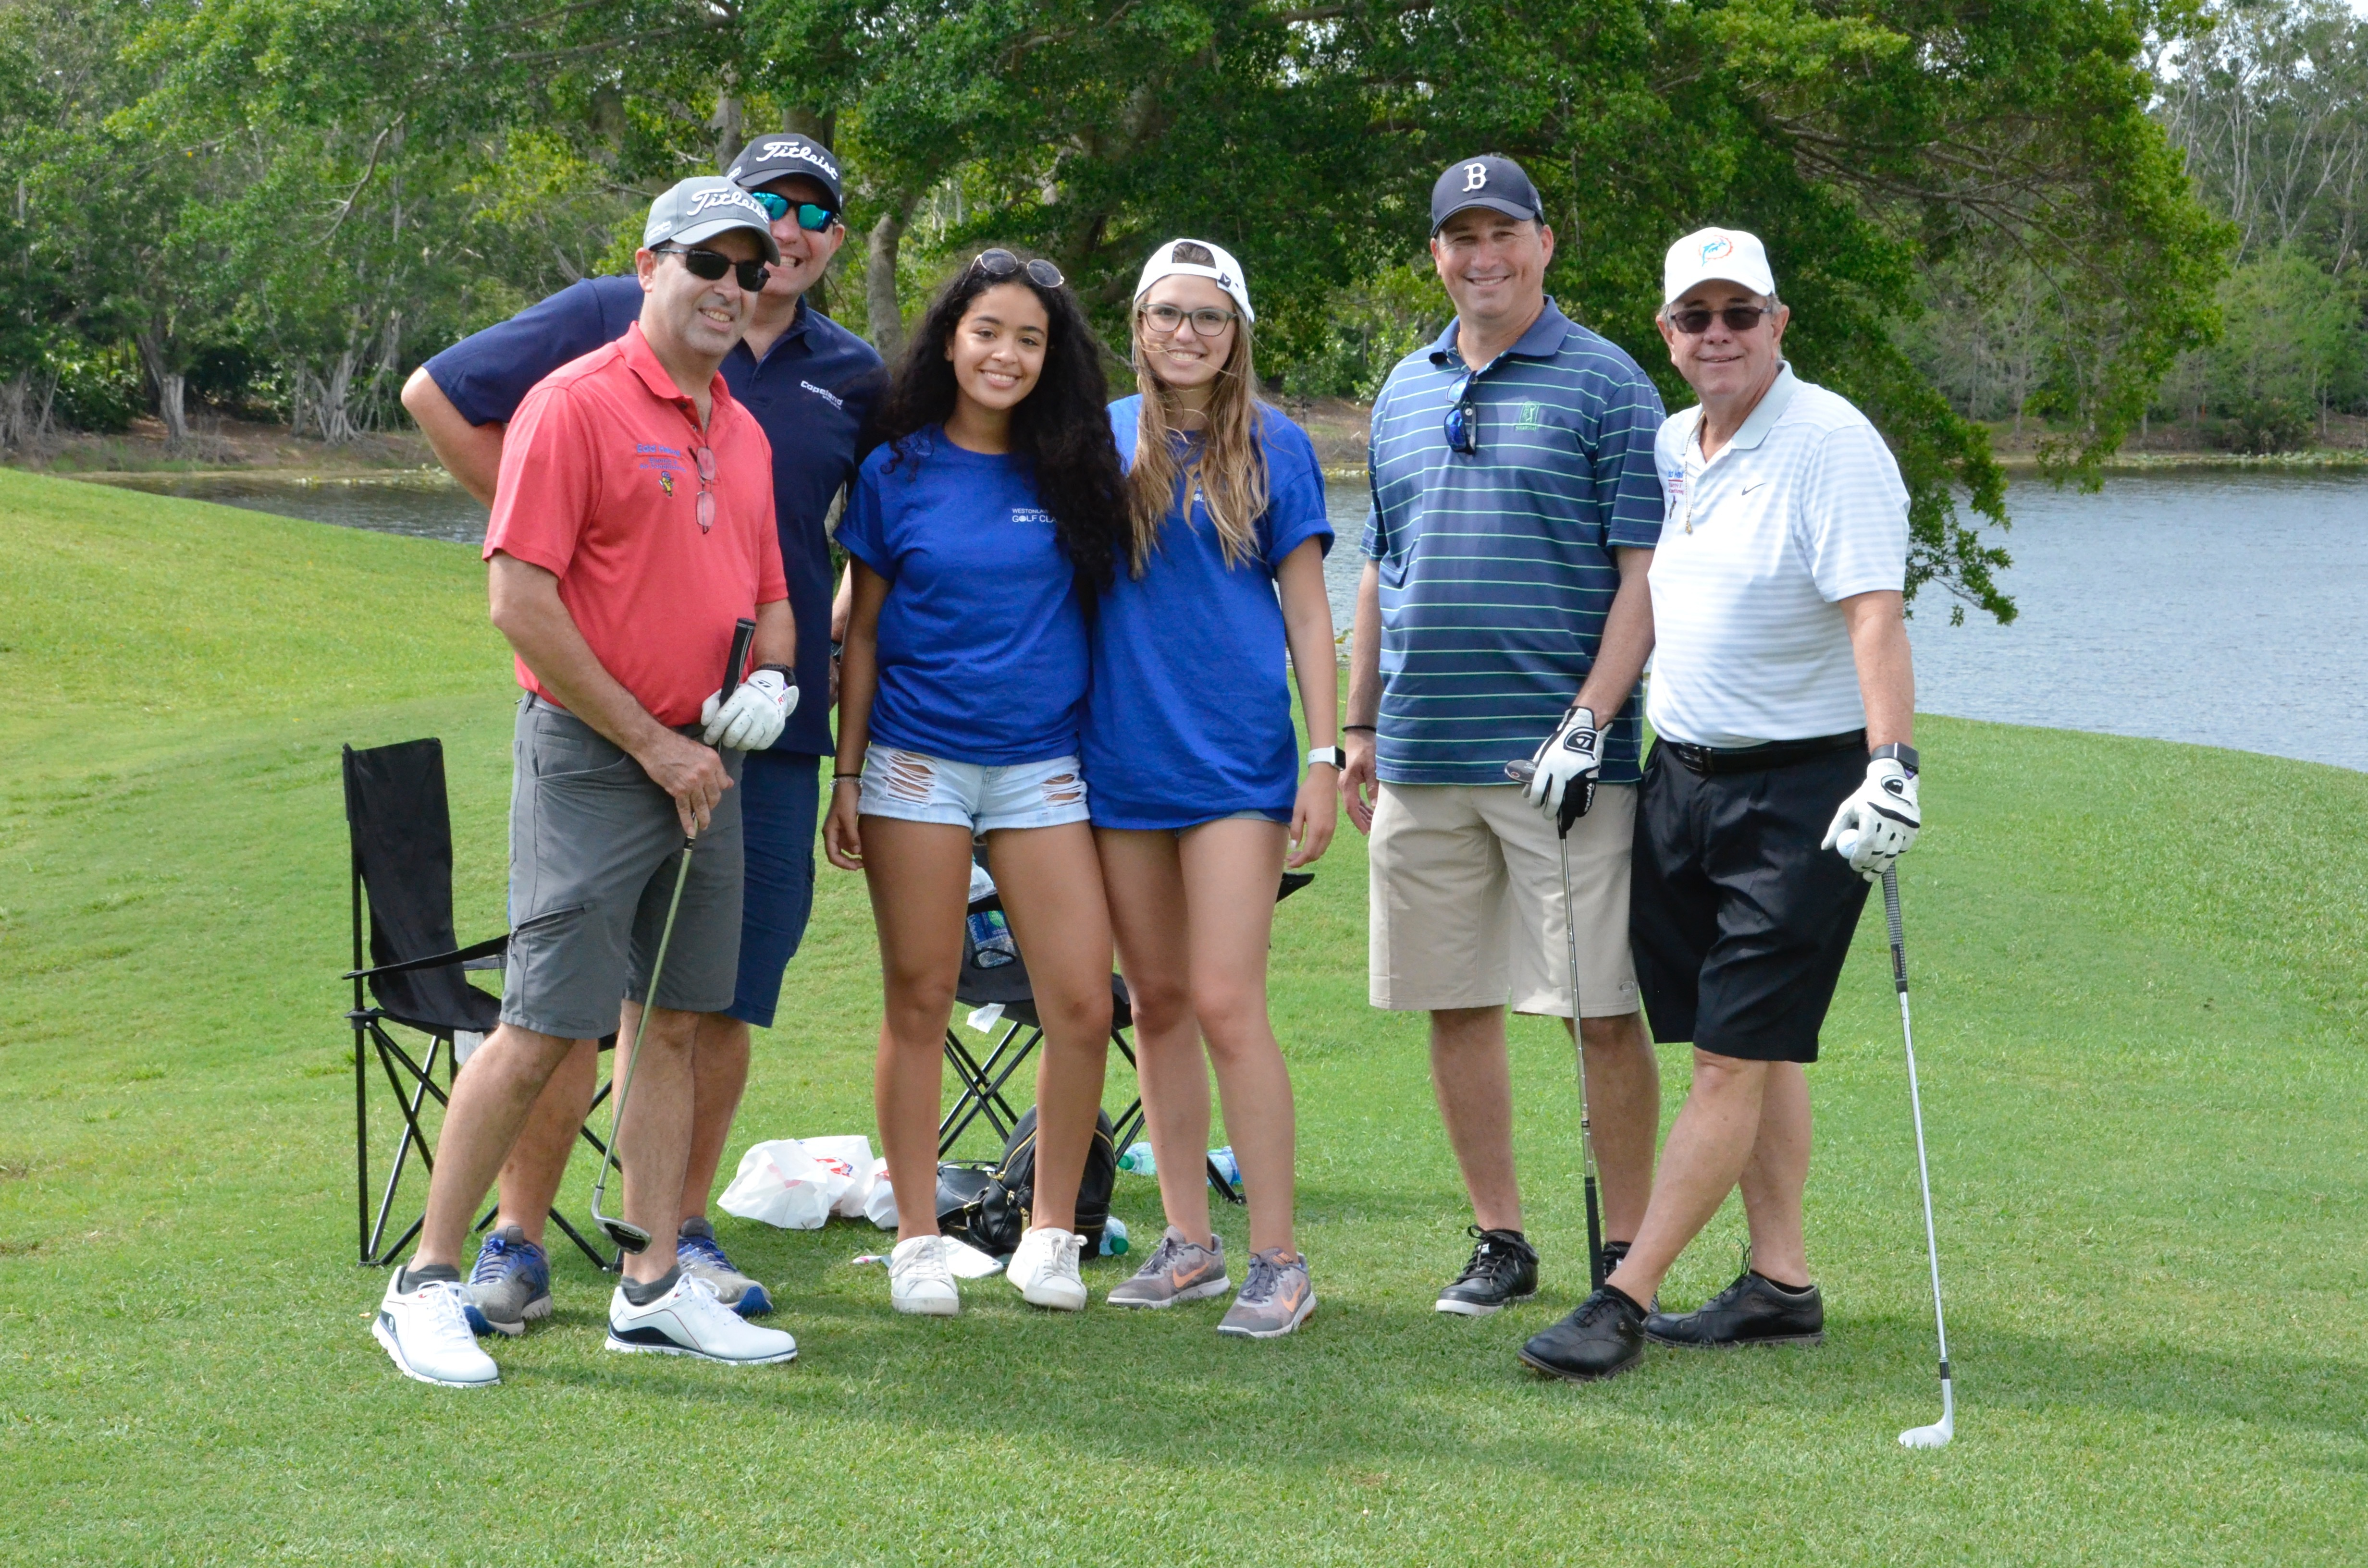 33rd Annual Rotary Golf Classic Sponsored by FHVLEGAL.COM gallery image #9